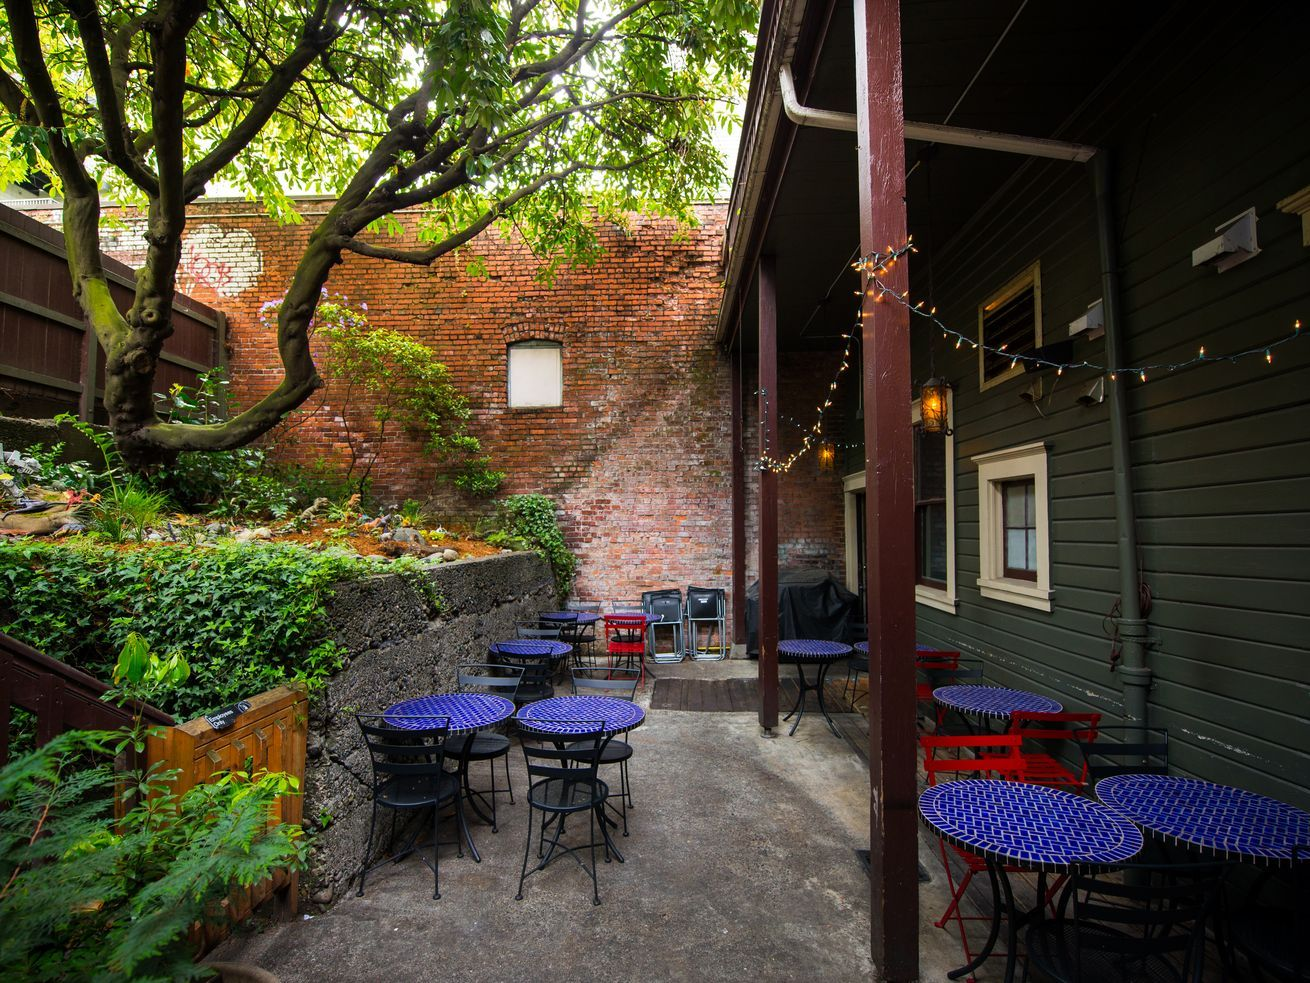 Captivating Great Spots For Outdoor Dining And Drinking In Seattle, Summer 2017